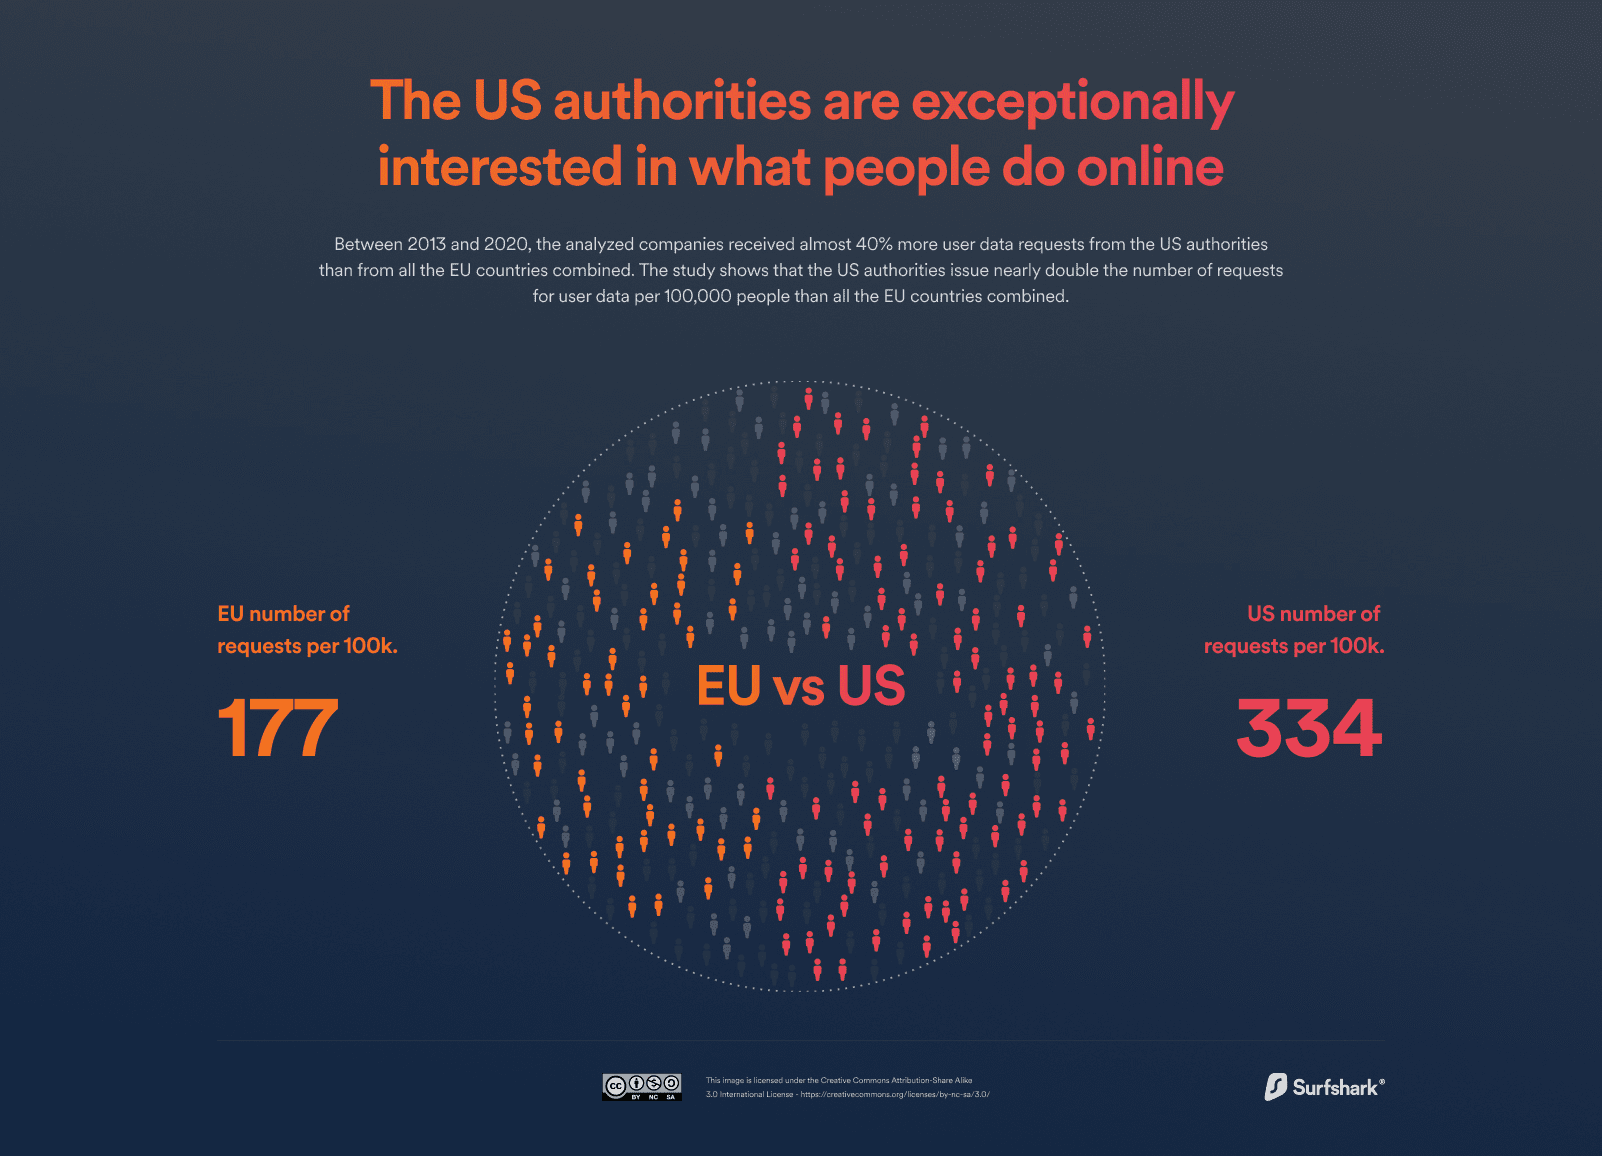 The US authorities are exceptionally interested in what people do online